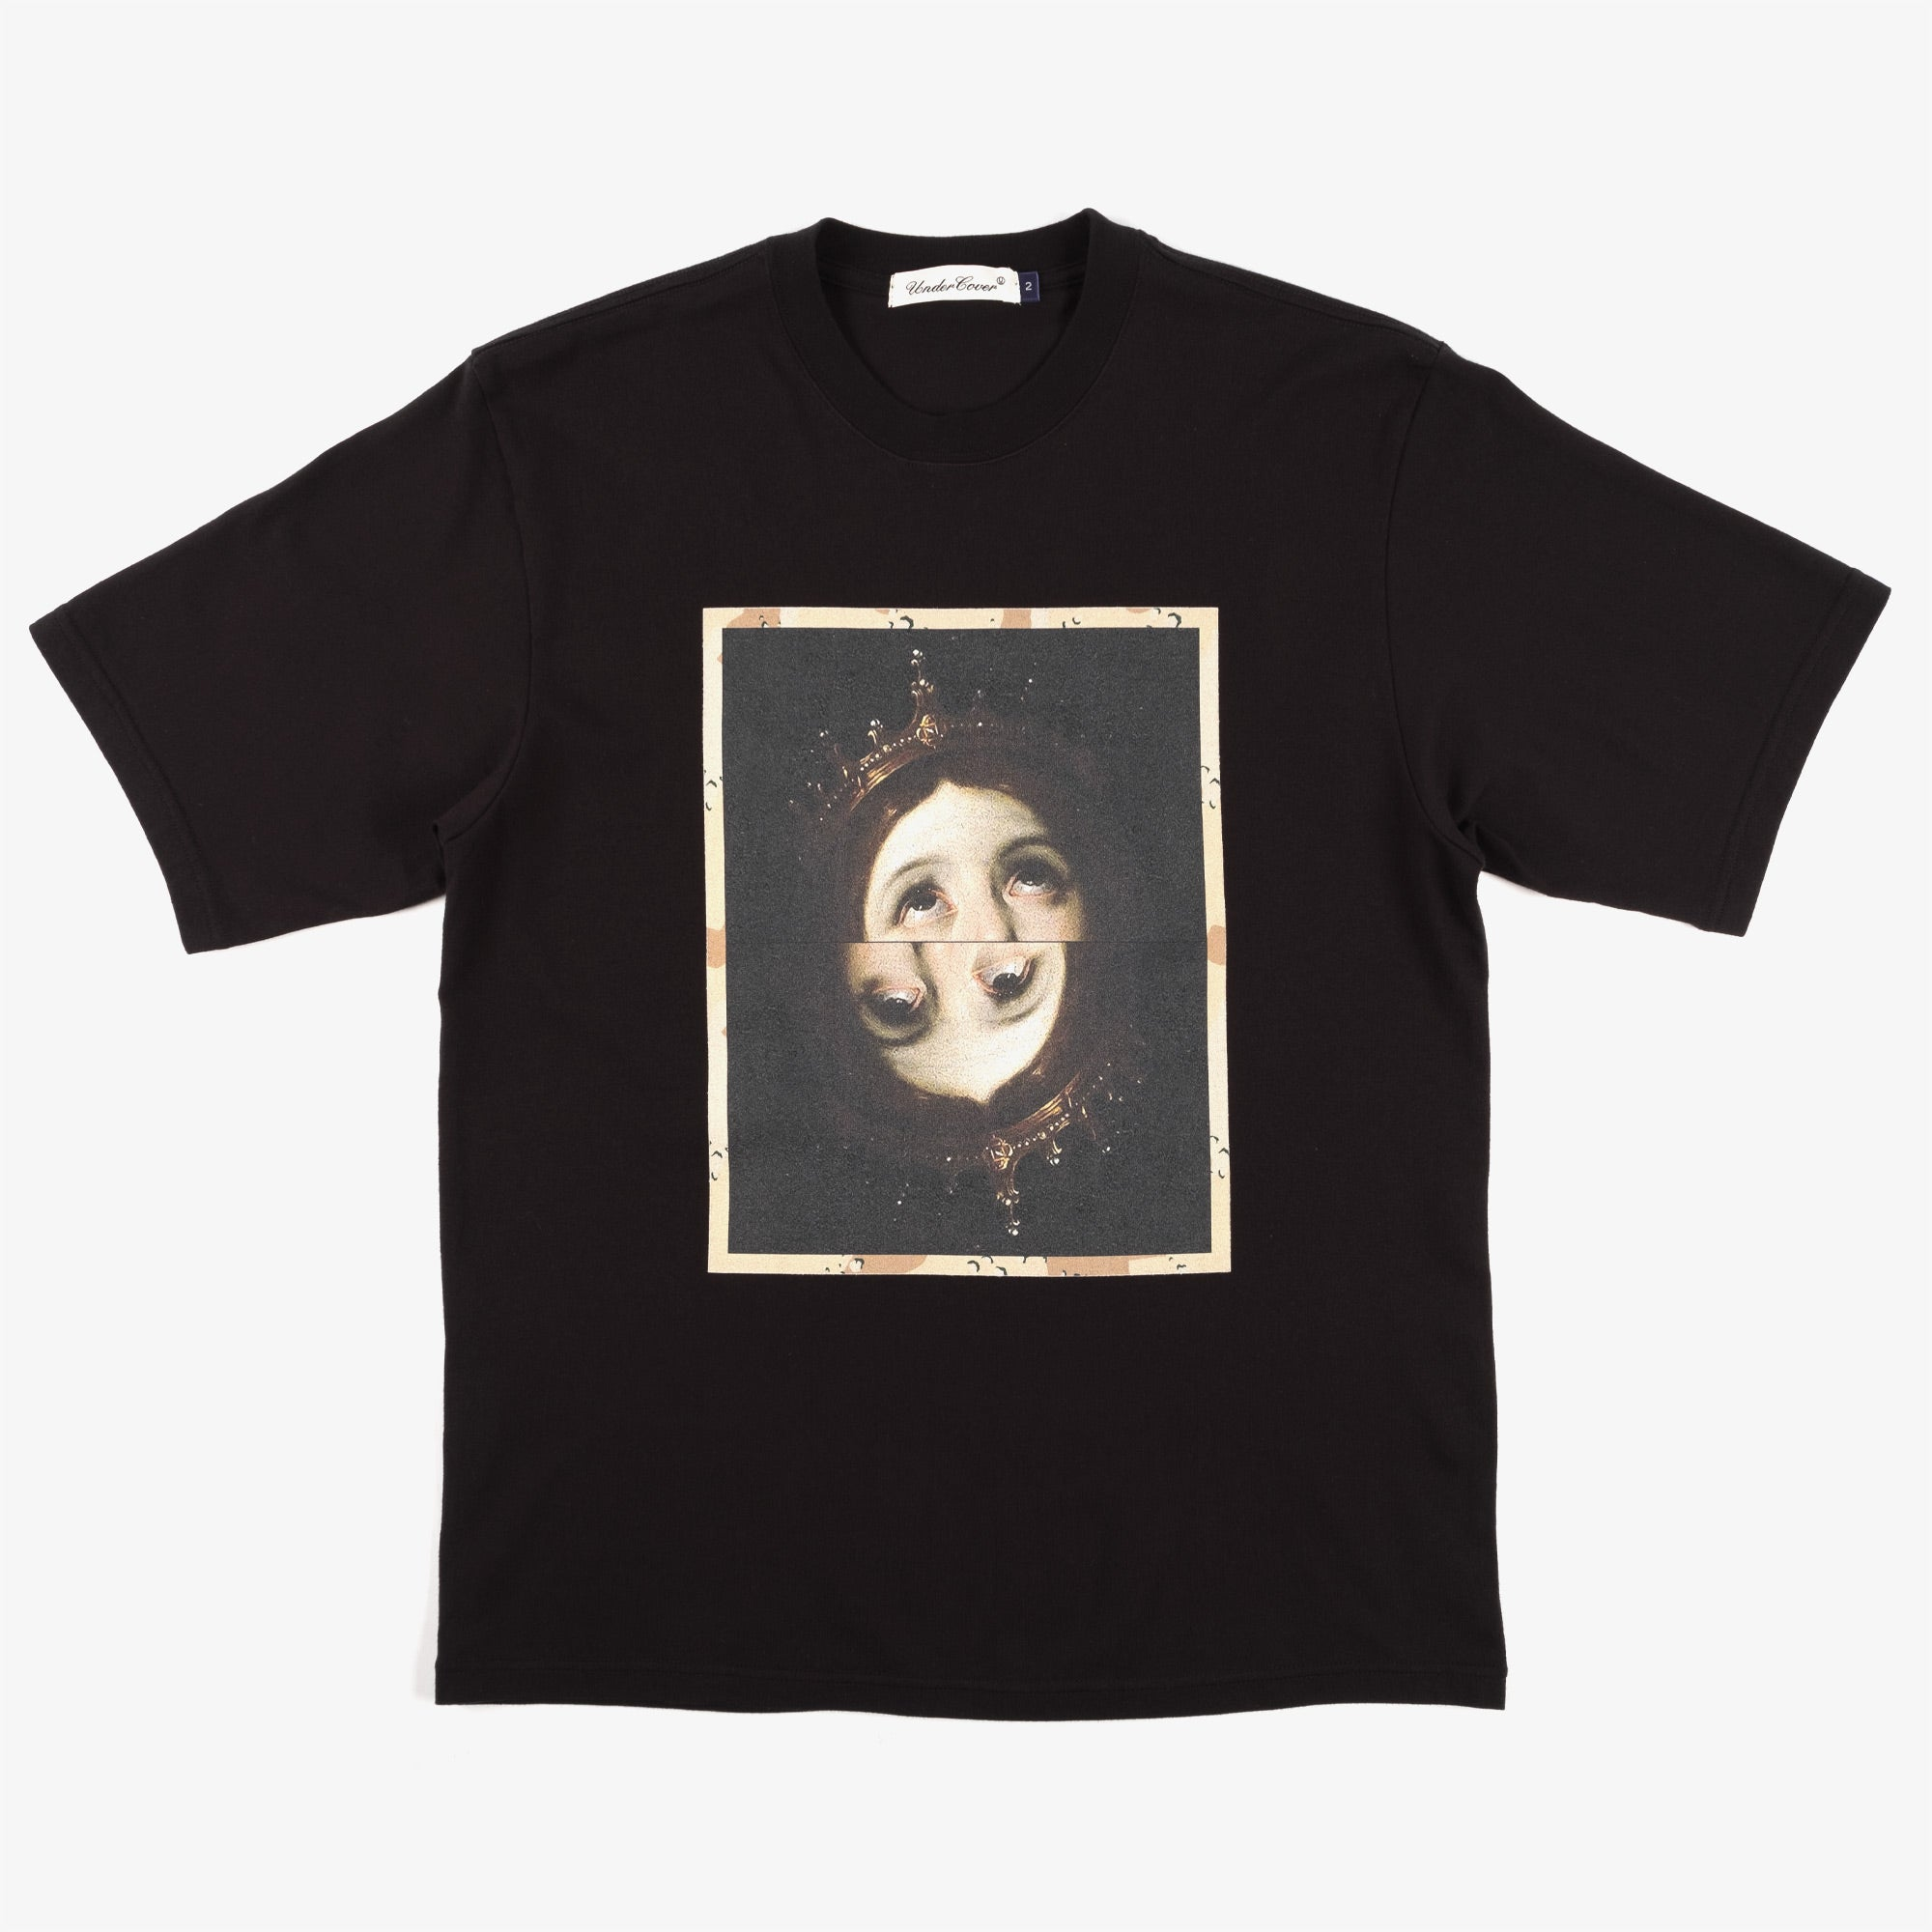 Undercover Two Faces Tee UC2A3804 - Black 1